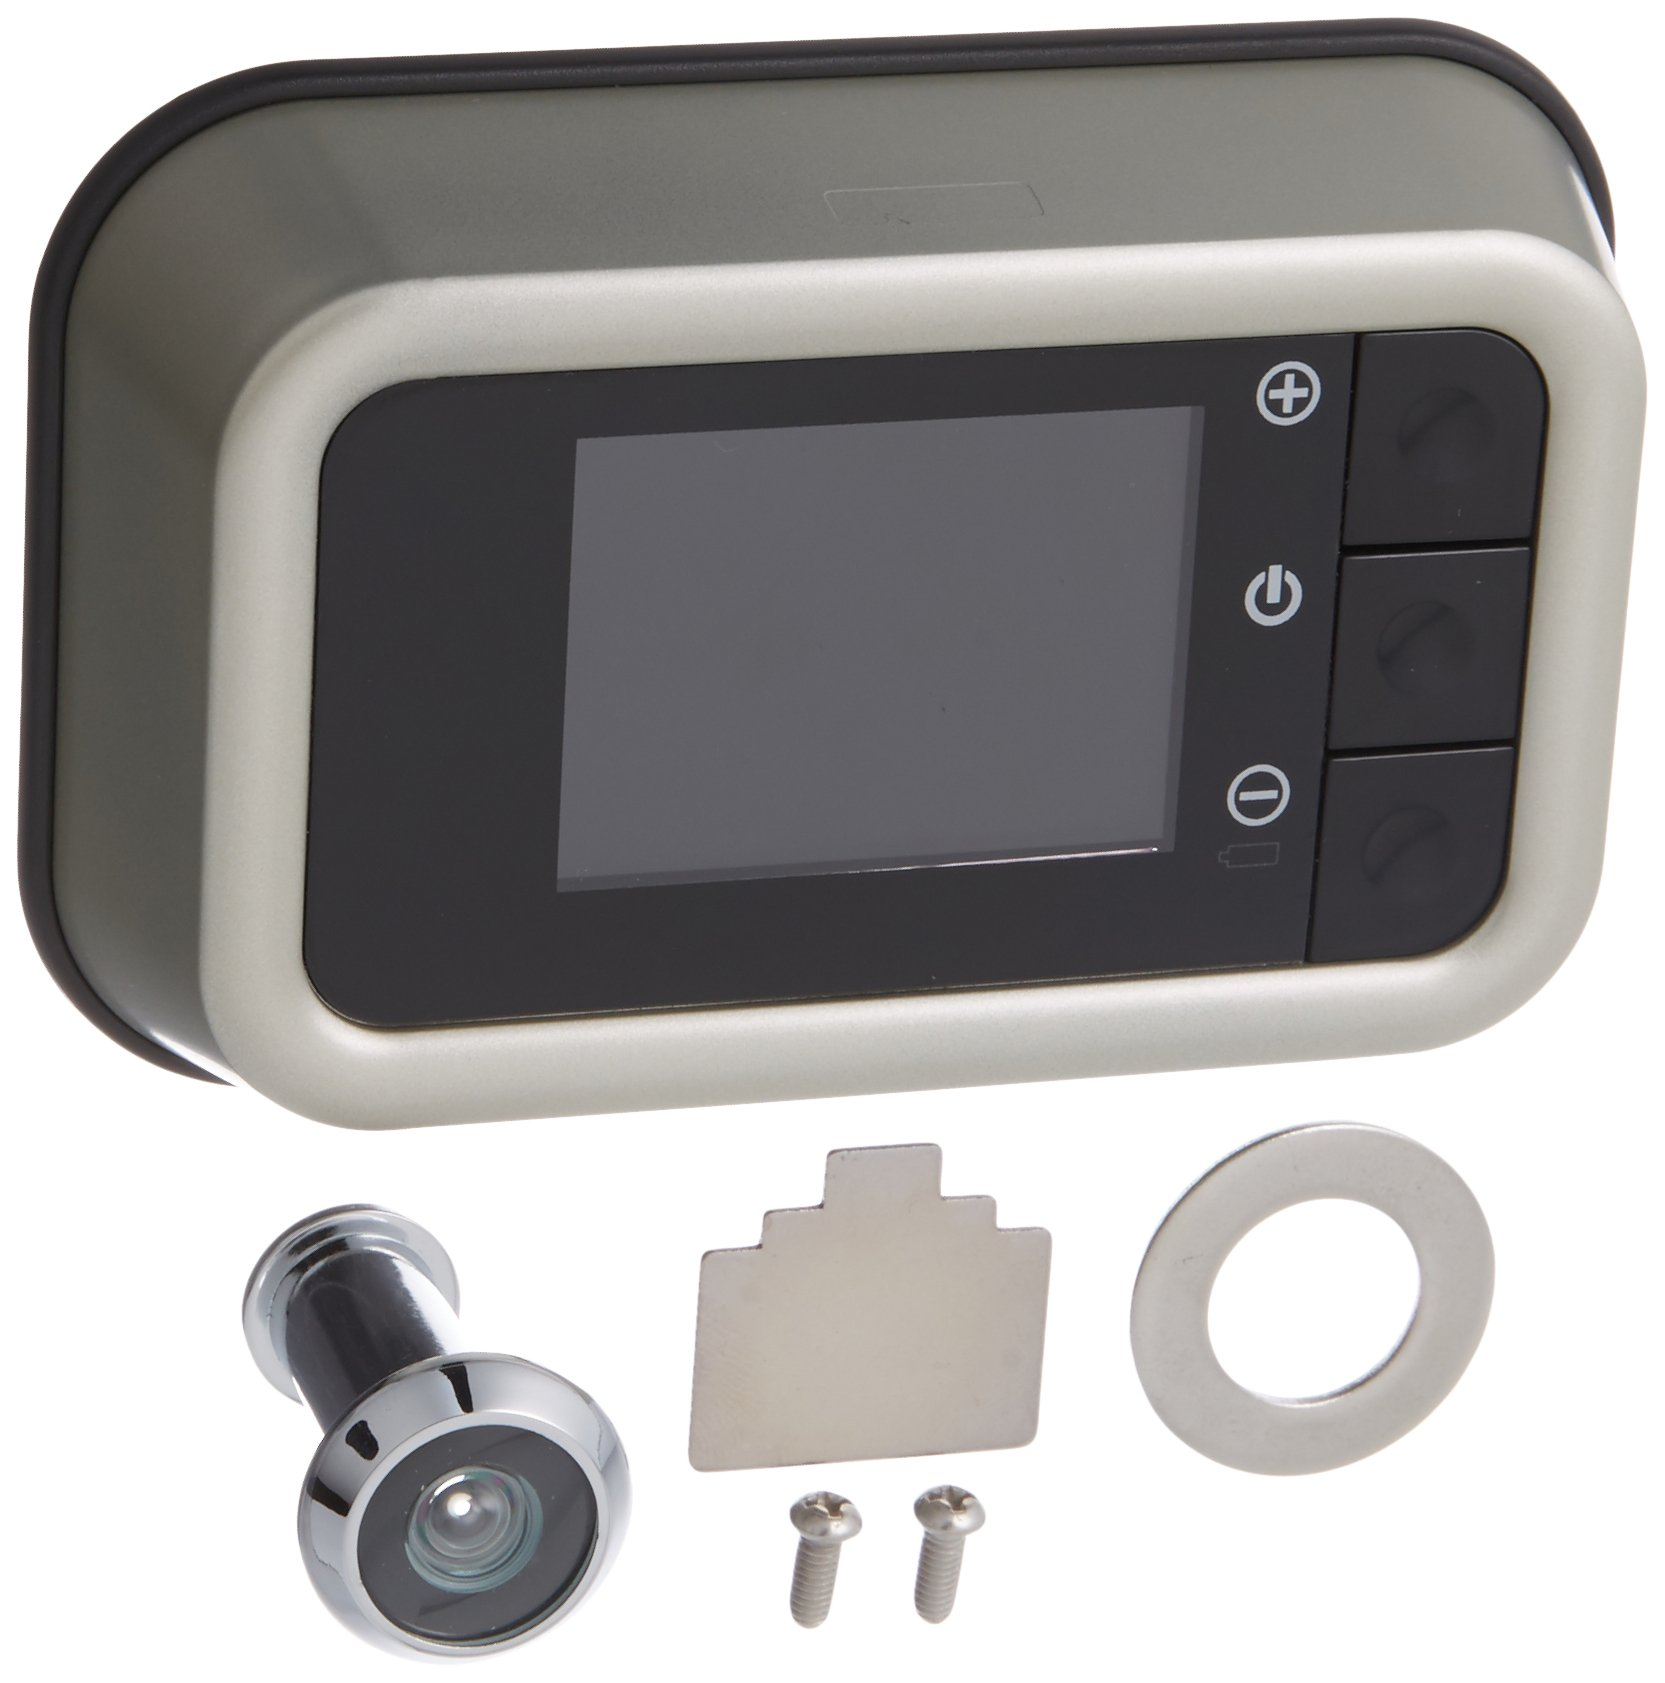 U.S. Patrol DIGITAL DOOR PEEPHOLE